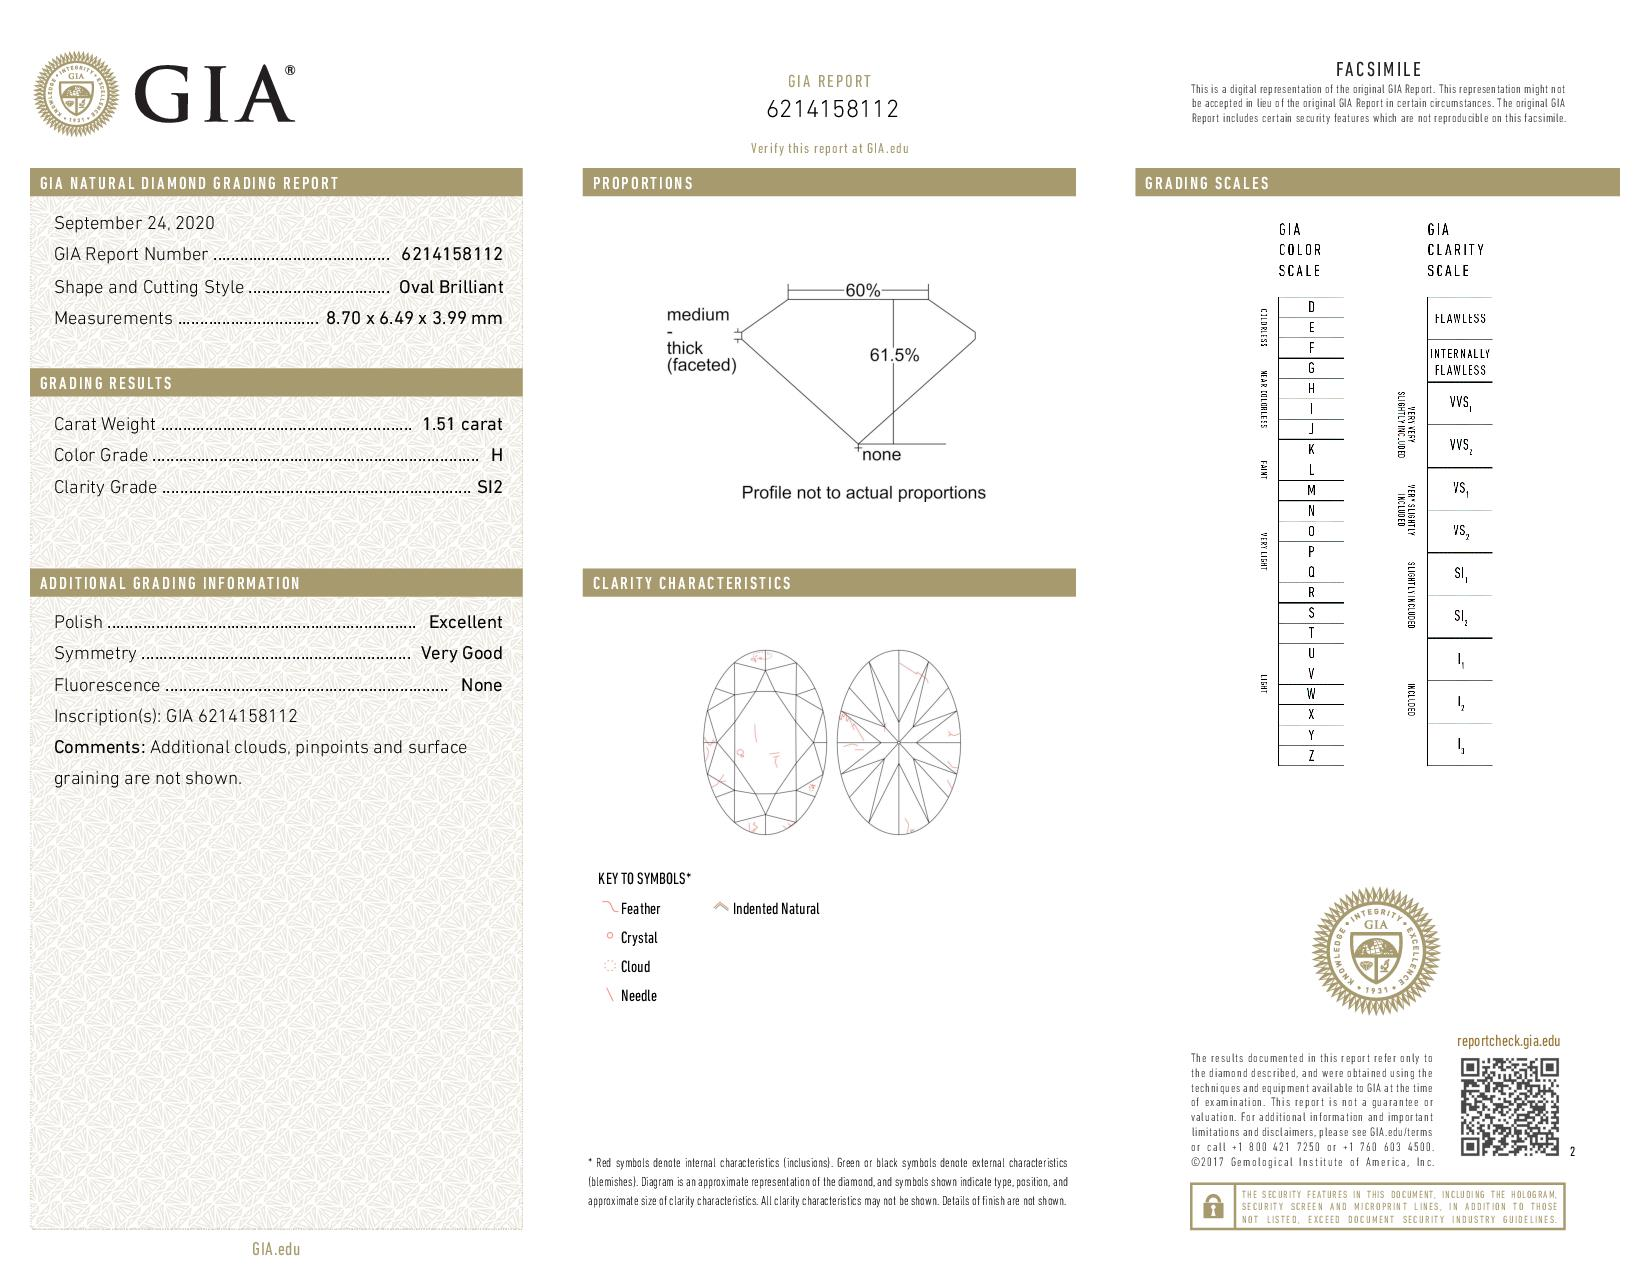 This is a 1.51 carat oval shape, H color, SI2 clarity natural diamond accompanied by a GIA grading report.